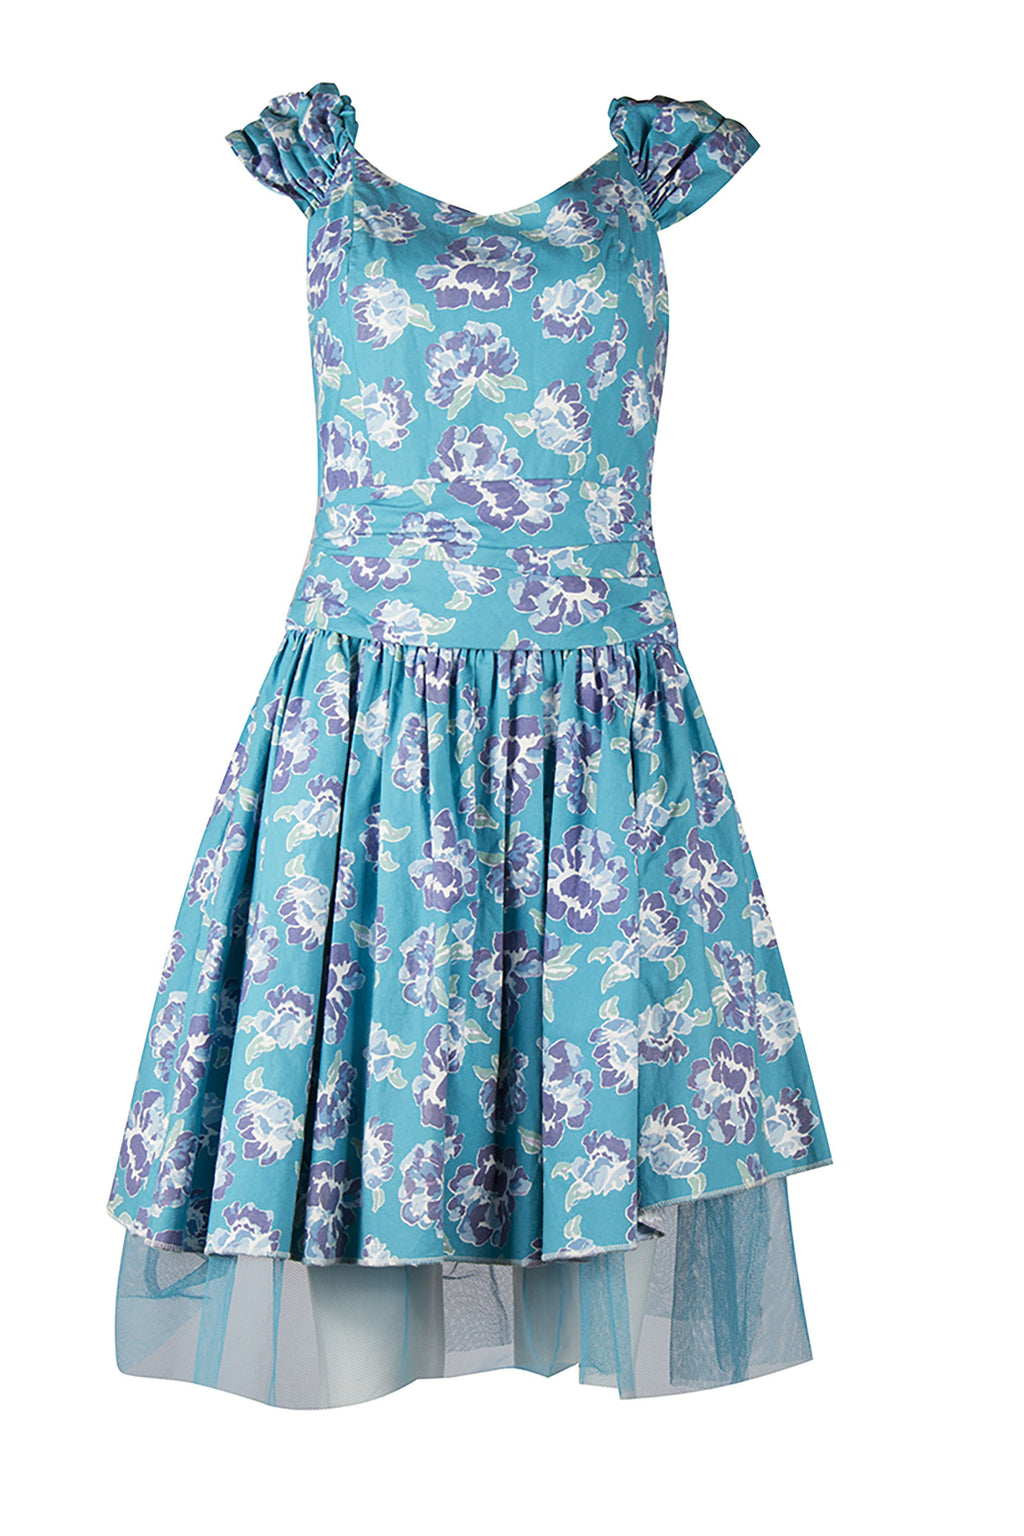 Blue Floral Midi Dress with Tulle Petticoat